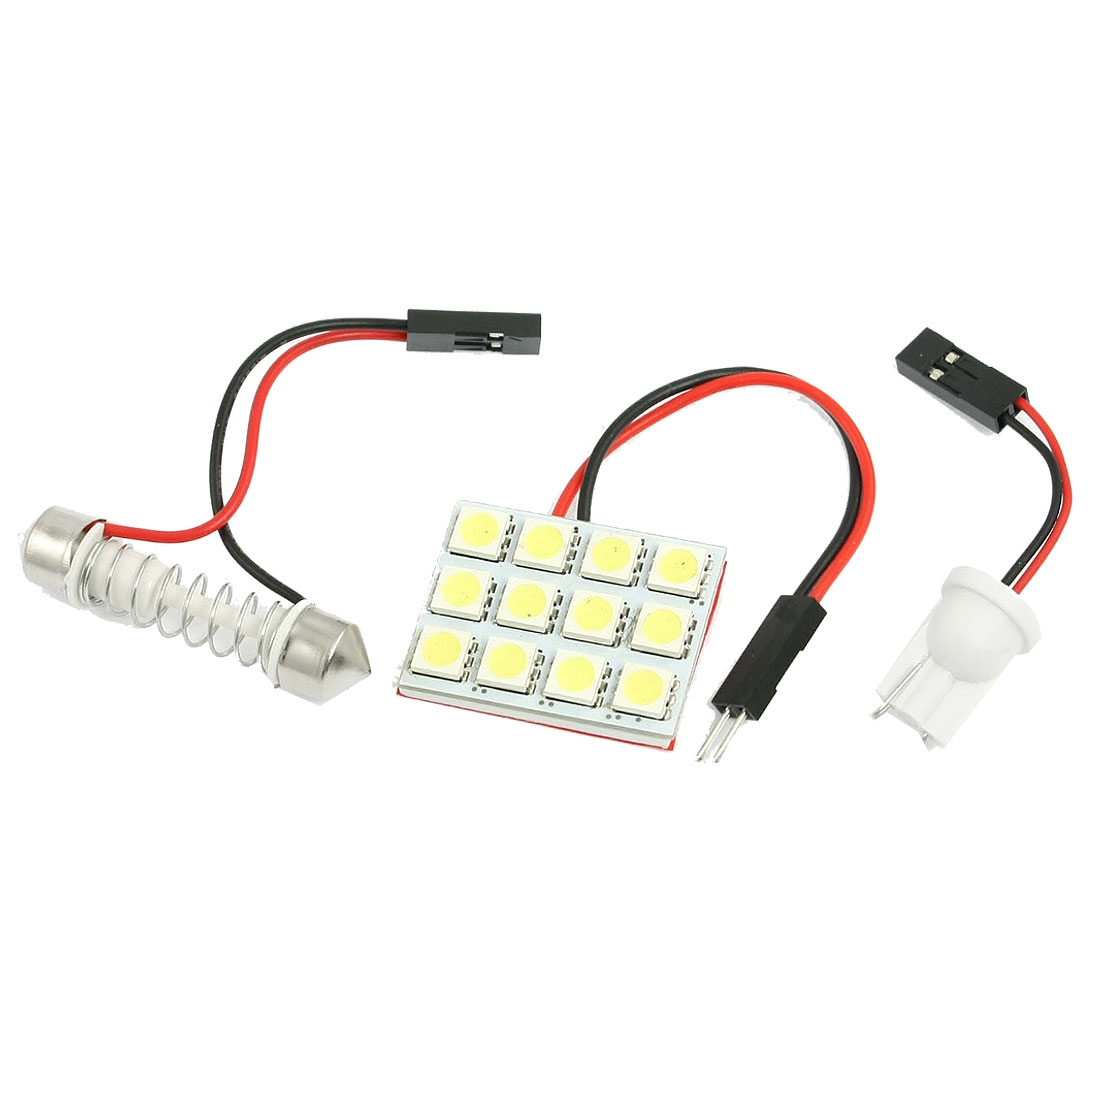 White 12 LED Panel 5050 SMD Dome Light Lamp + T10 Festoon Adapter